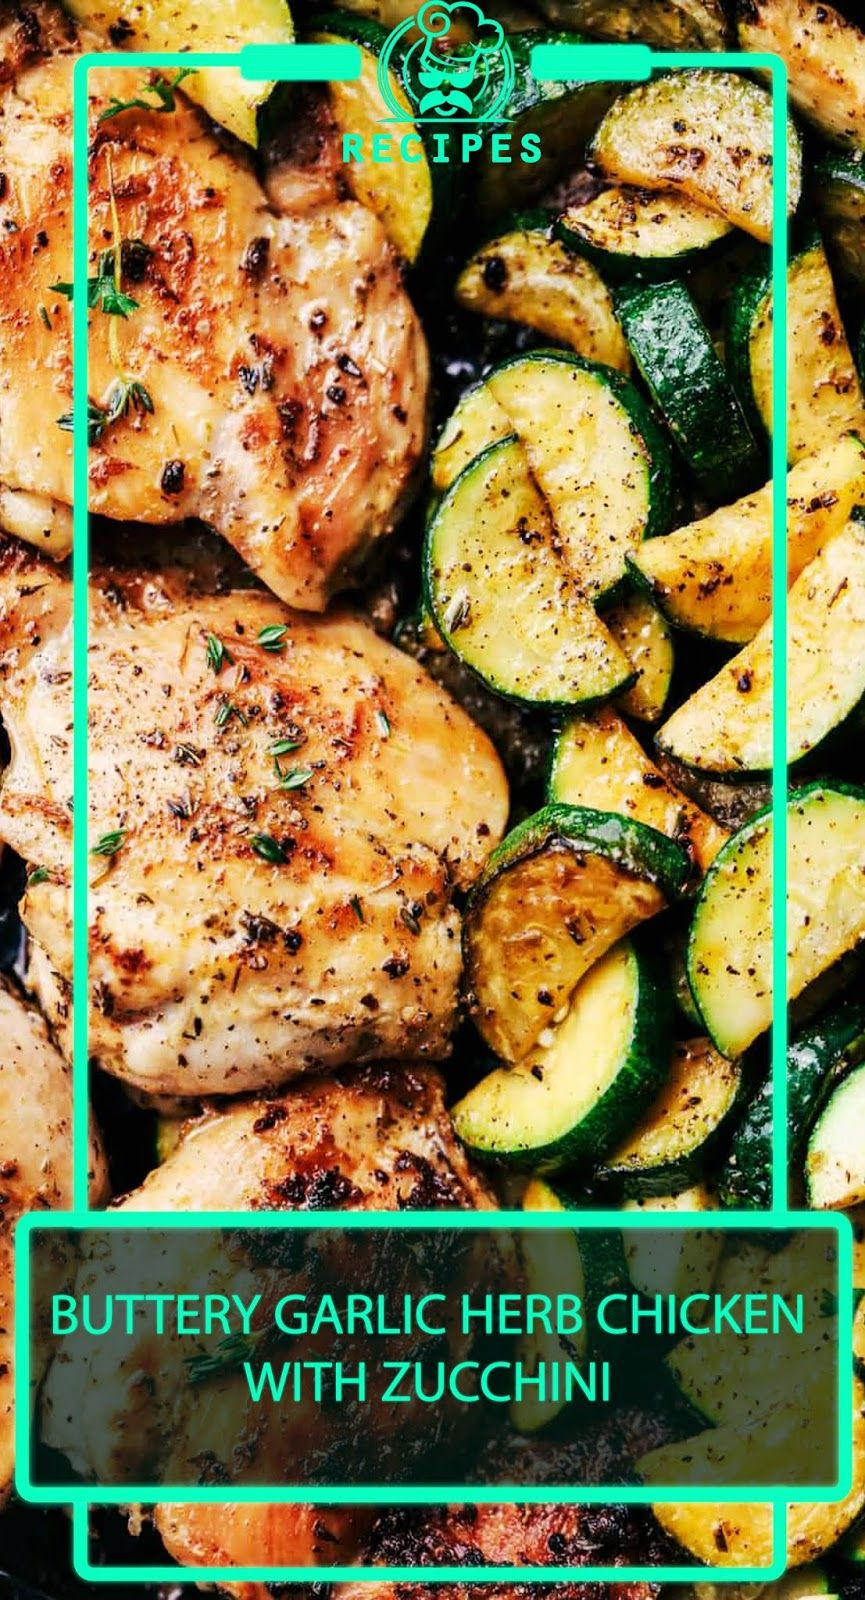 Buttery Garlic Herb Chicken With Zucchini Resep Makanan Resep Ayam Sehat Resep Ayam